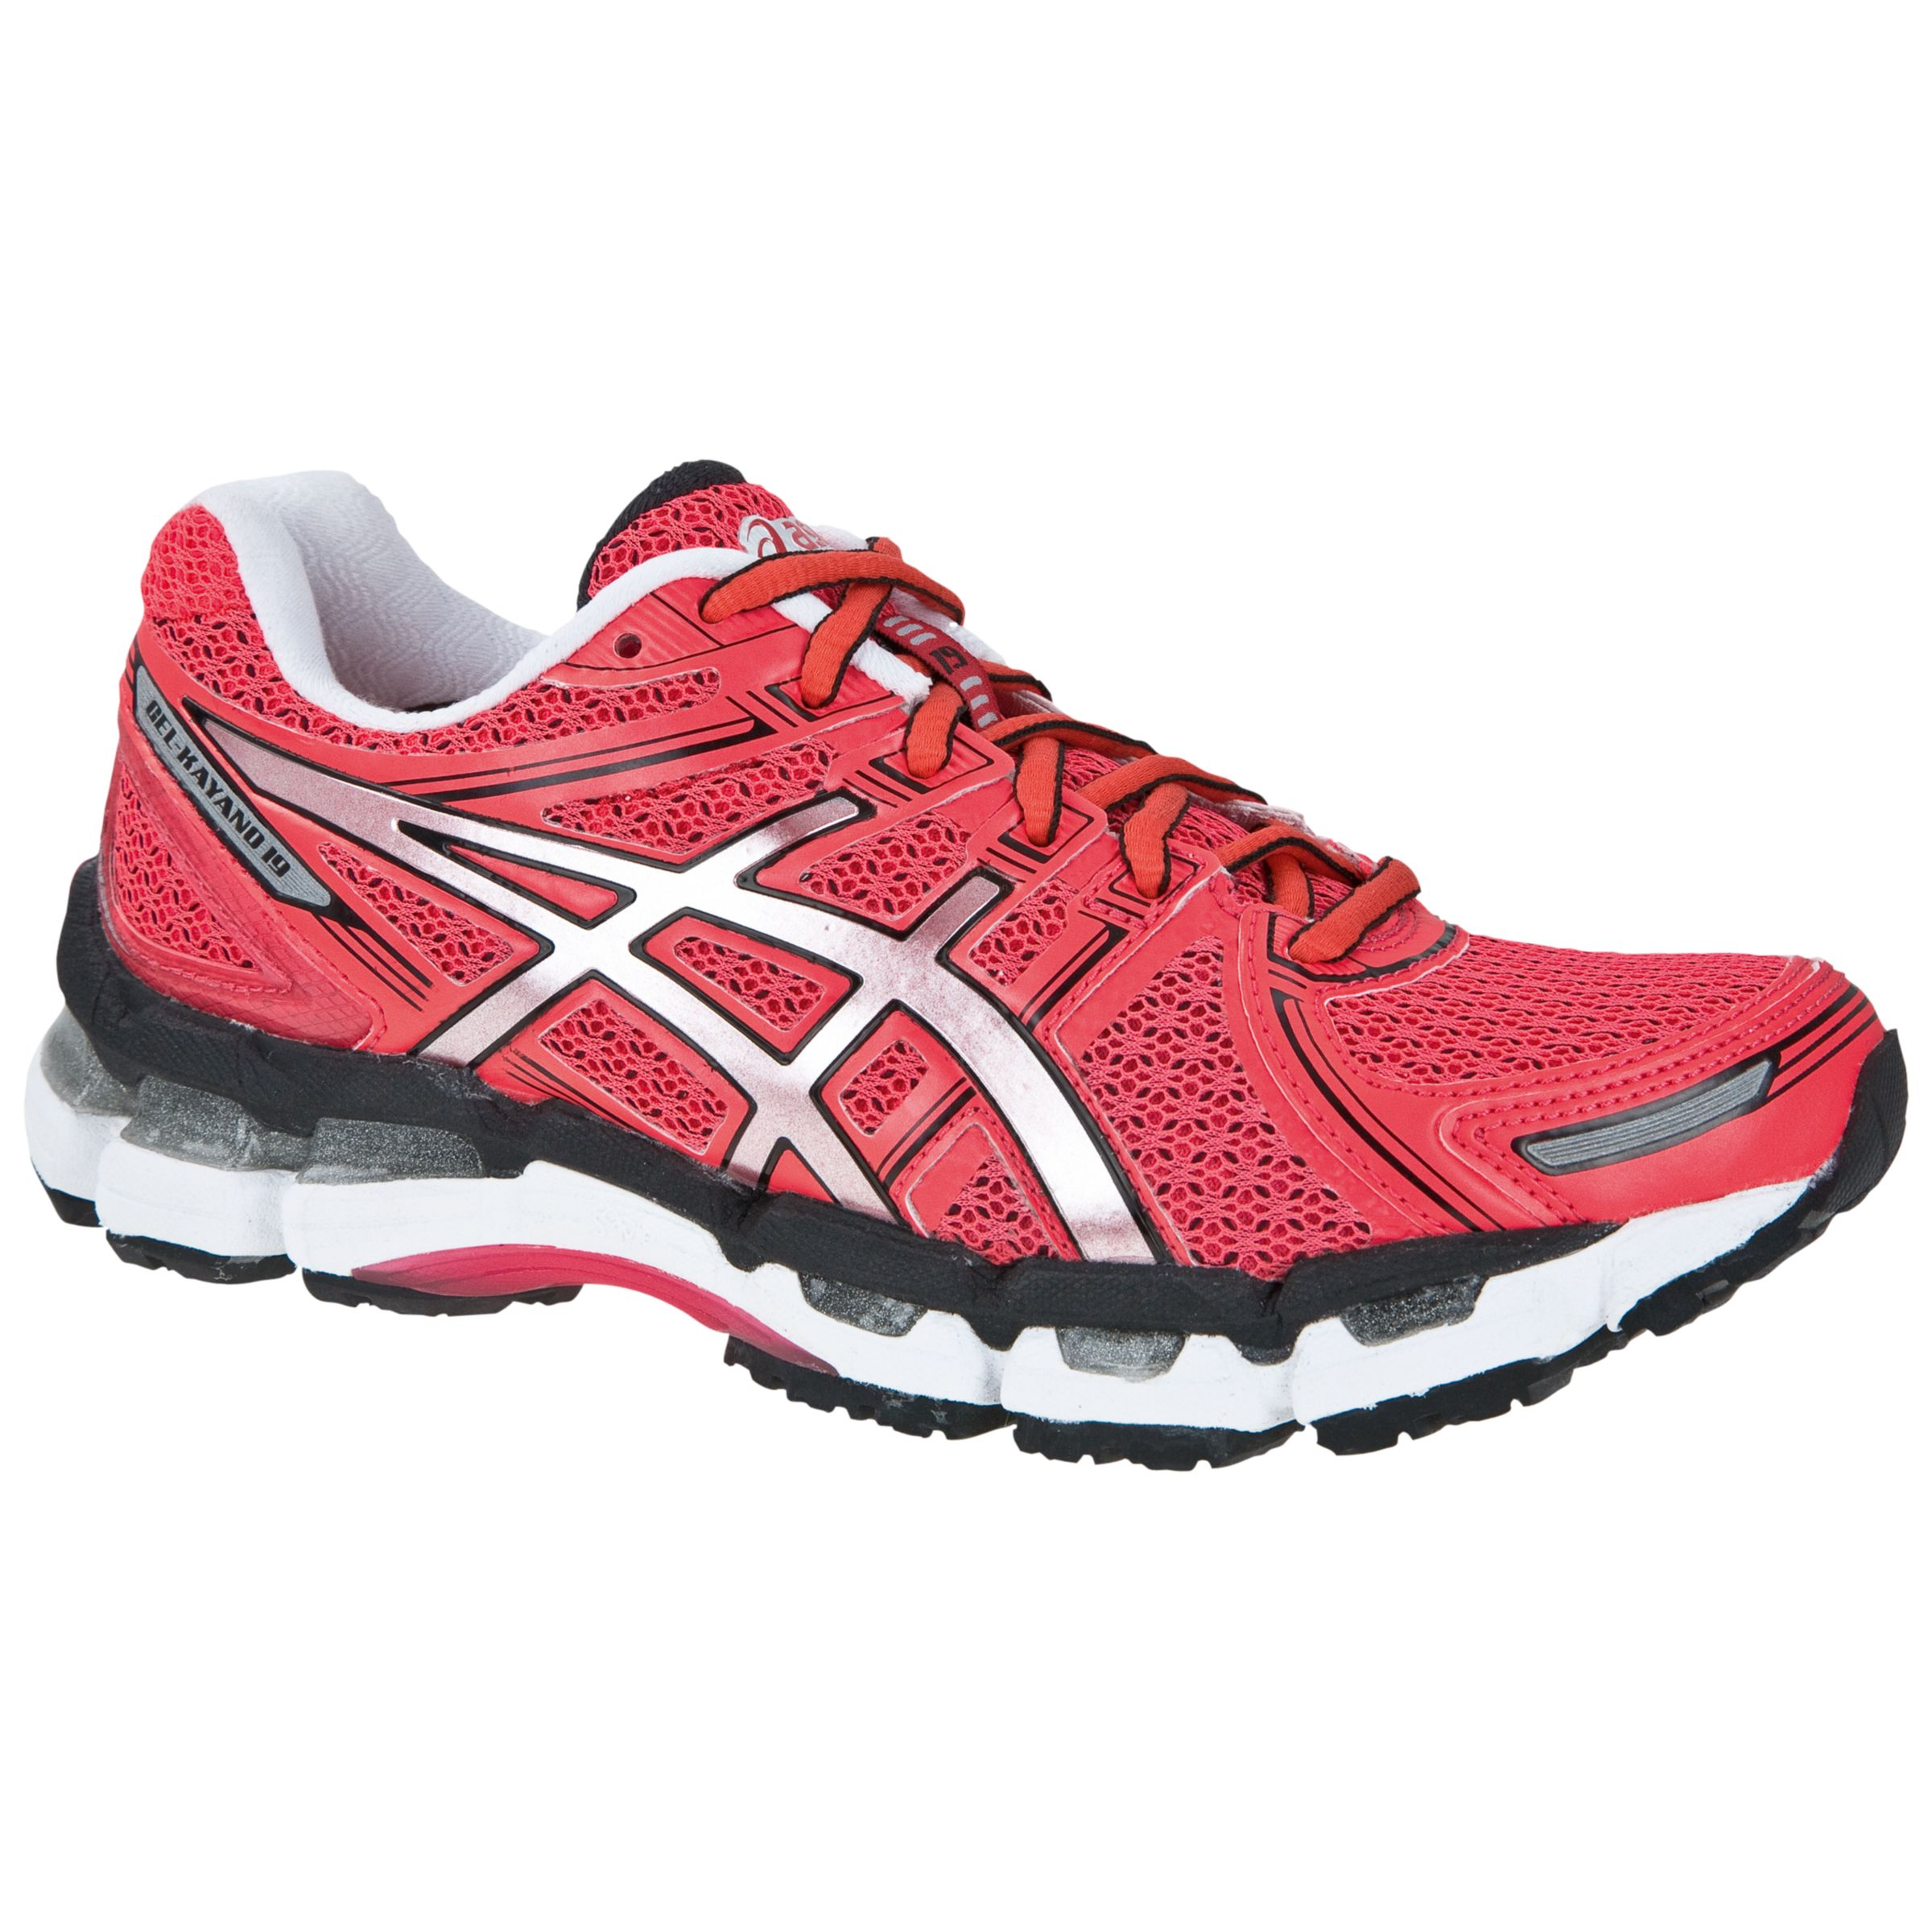 Asics Gel-Kayano 19 Women's Running Shoes, Pink